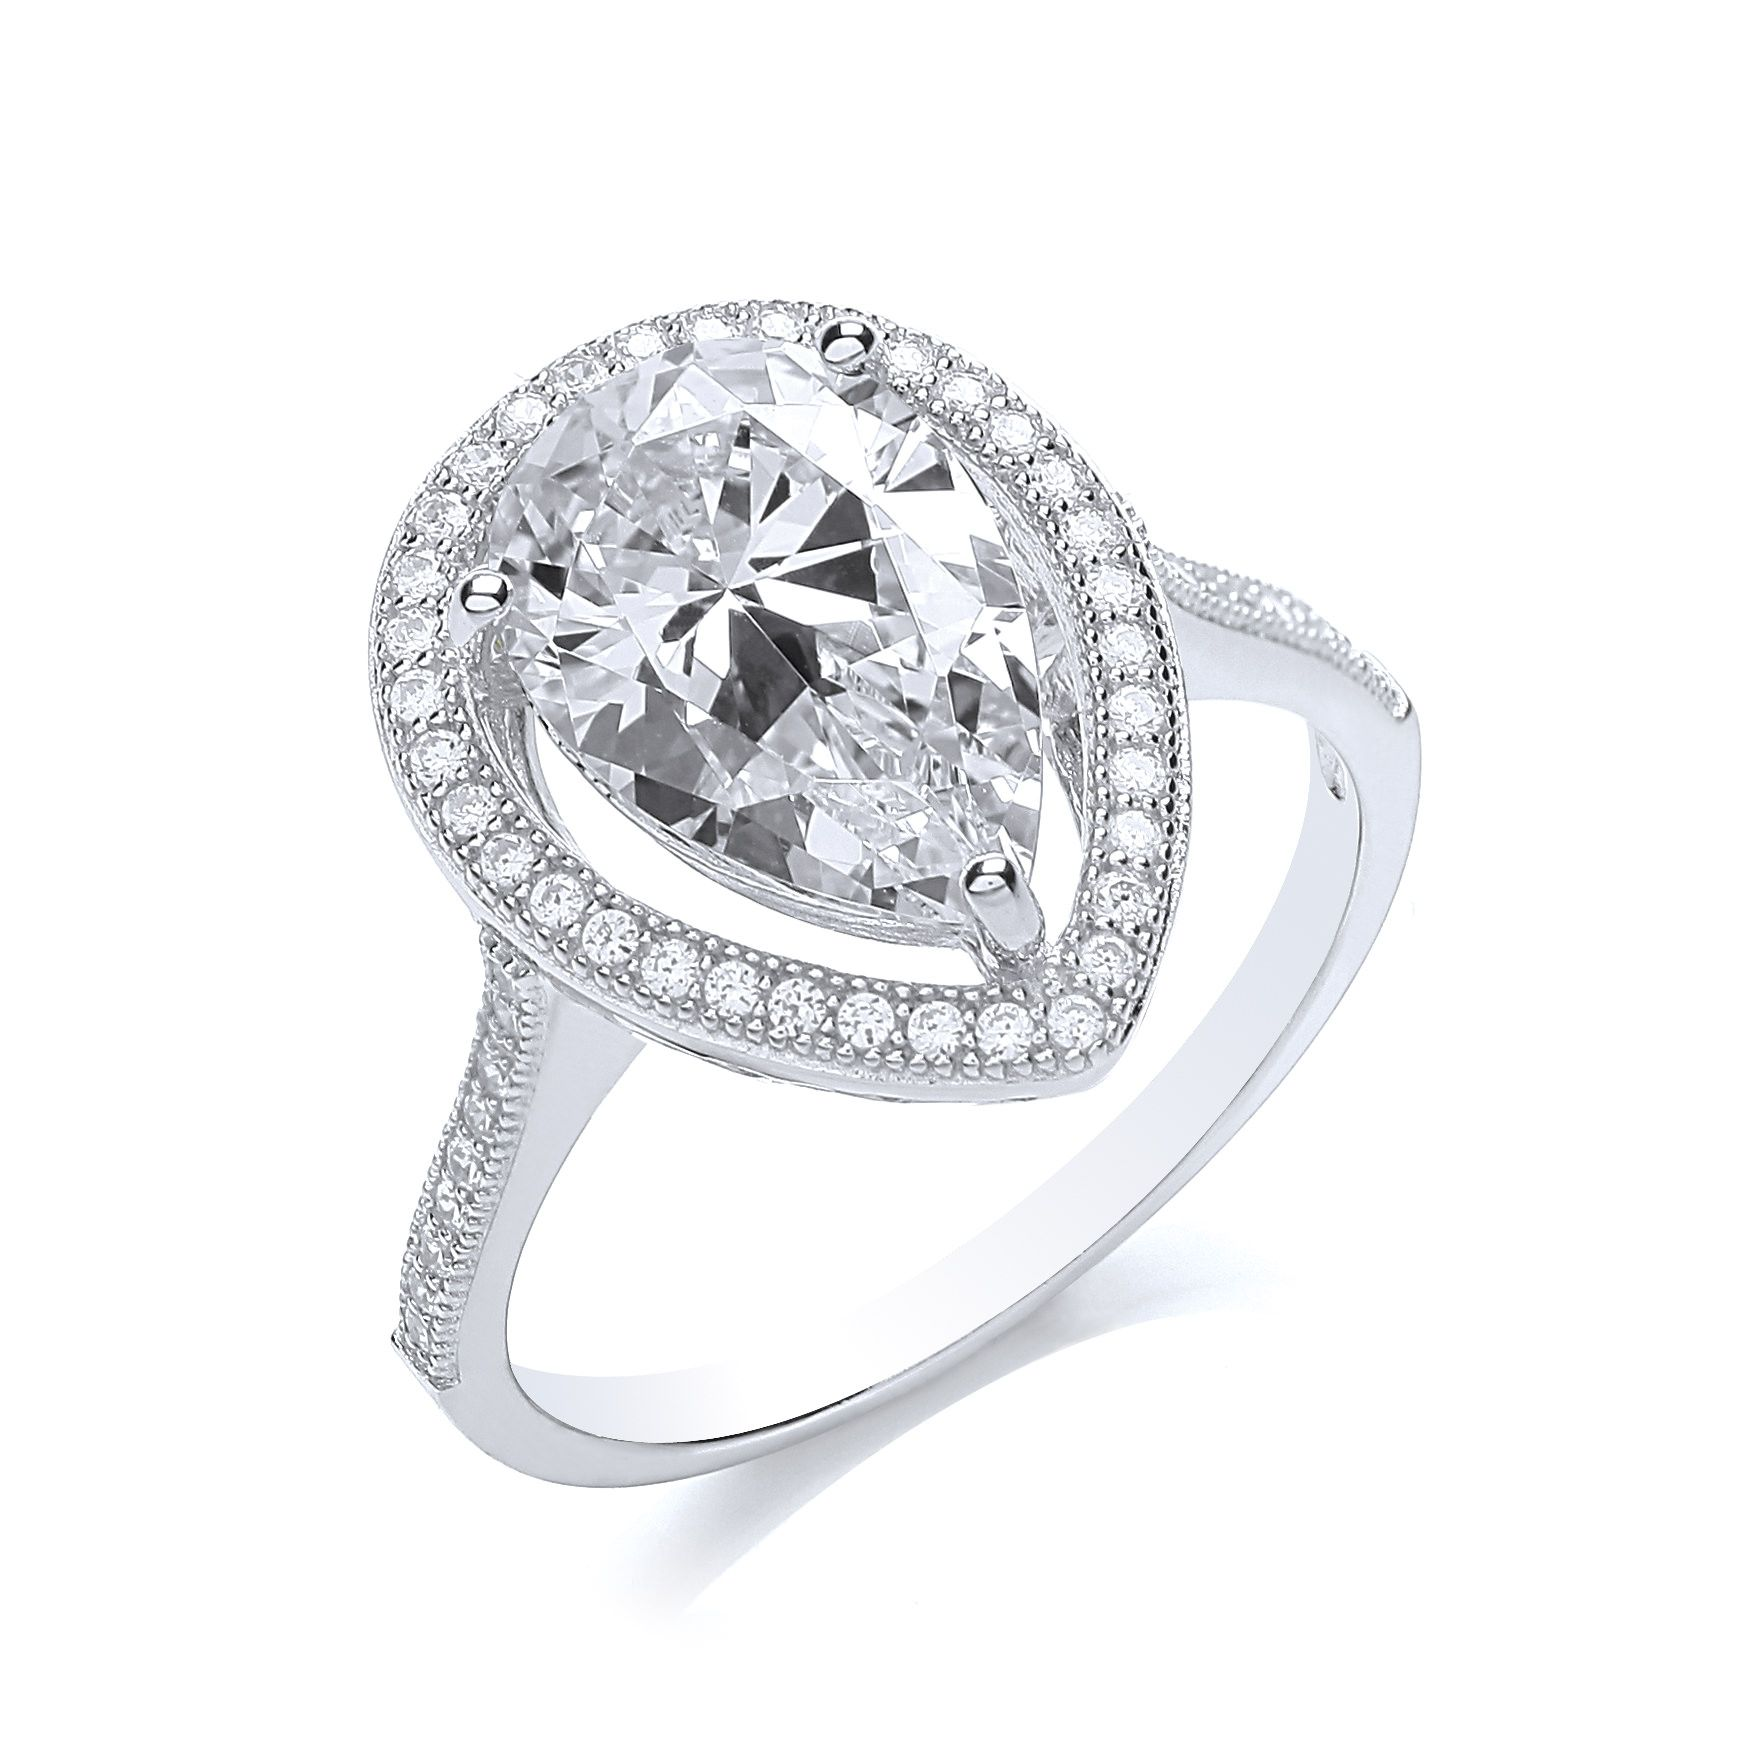 bouton pear ring